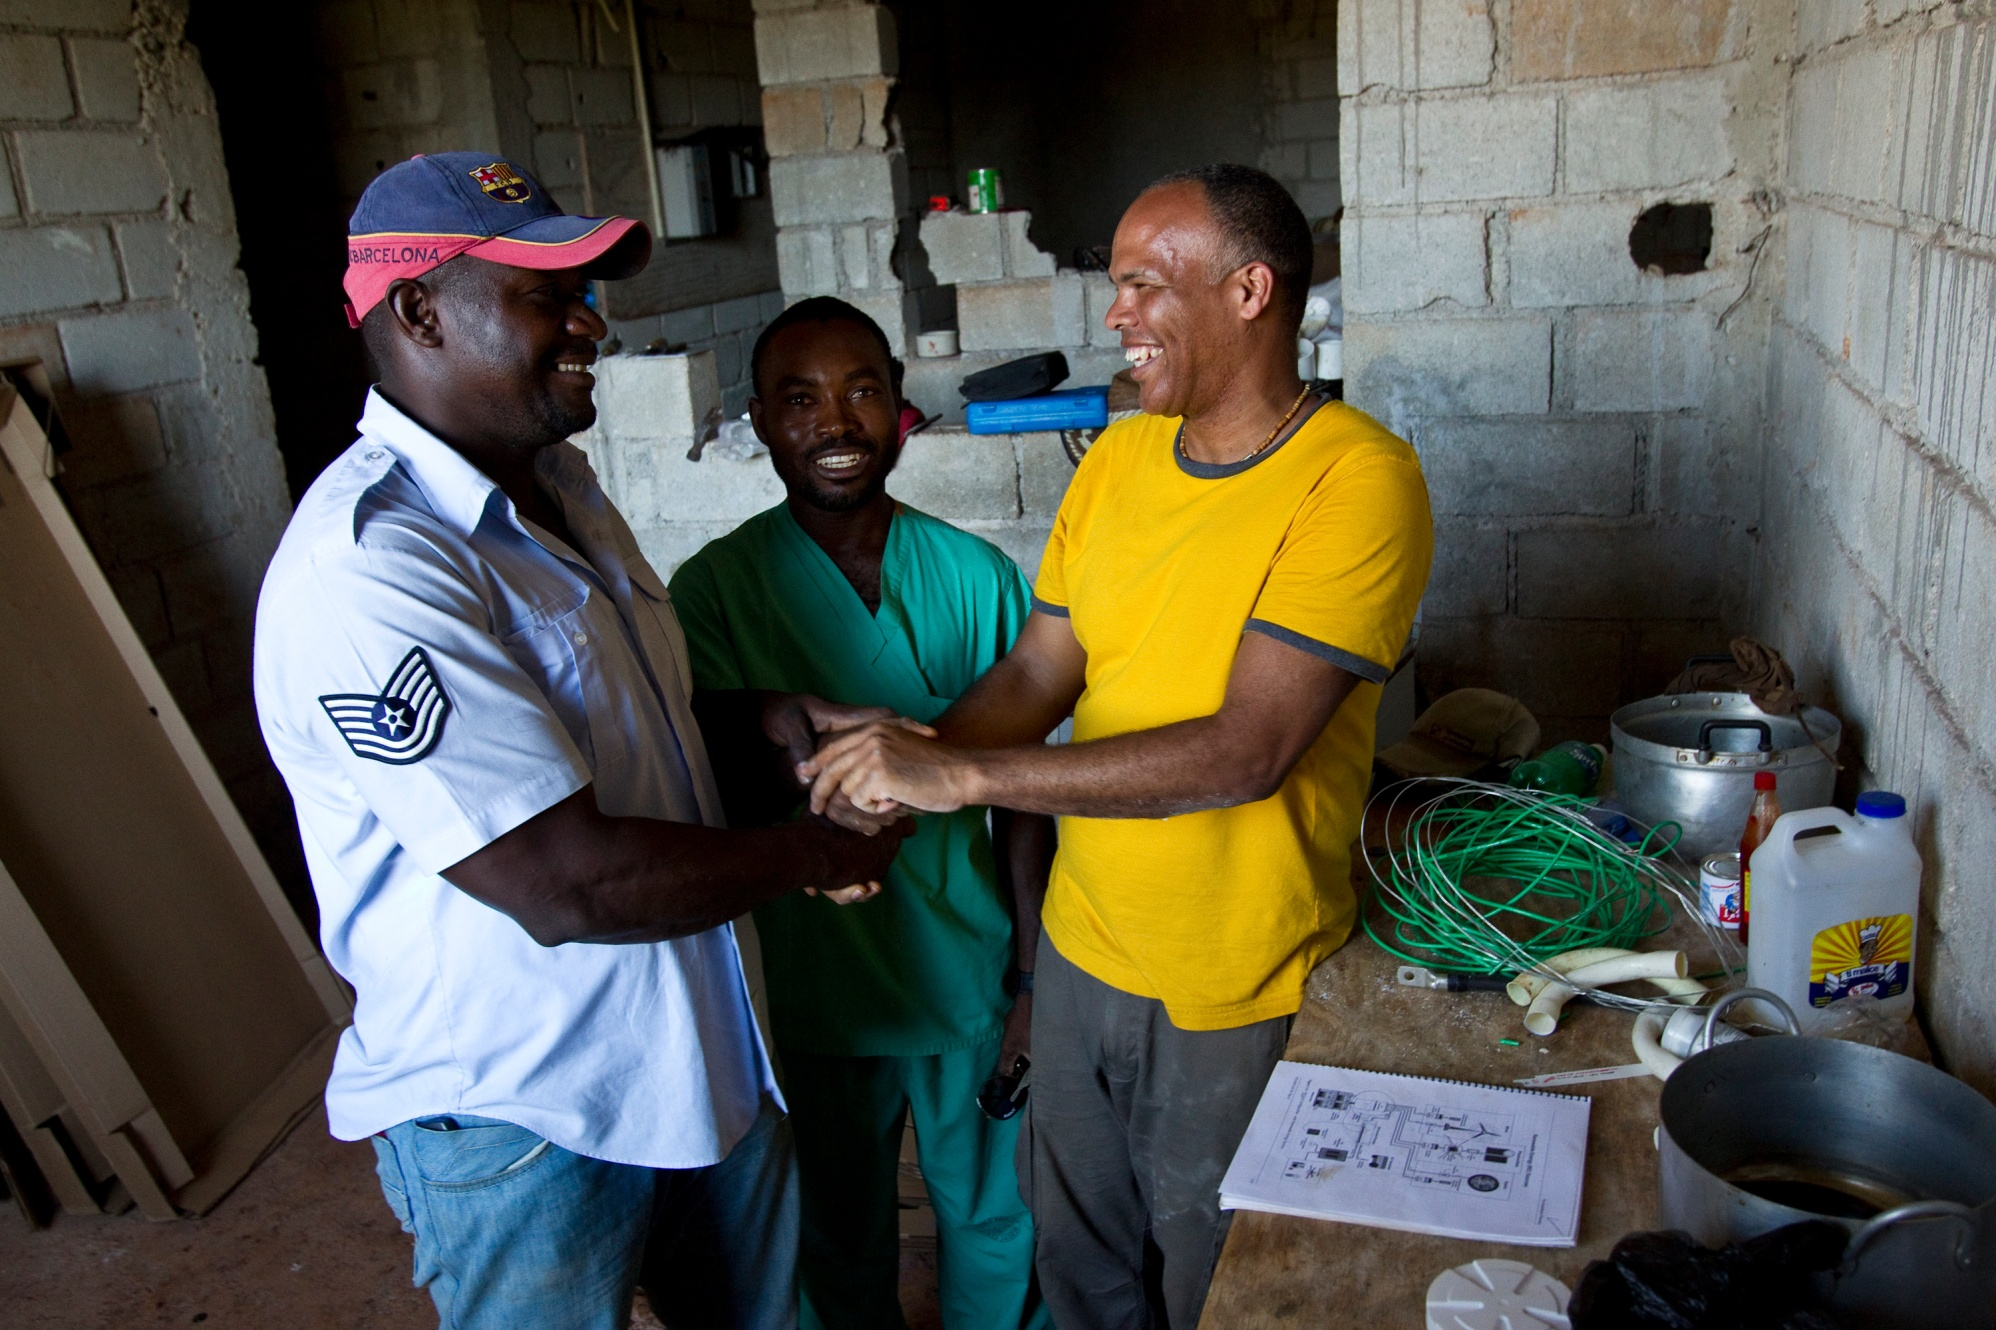 Christopher Castro (right), of the Rotary Club of Brentwood, New York, USA, trains a local technician to maintain a solar energy system in Nan Sema, on the island of La Gonave, Haiti.